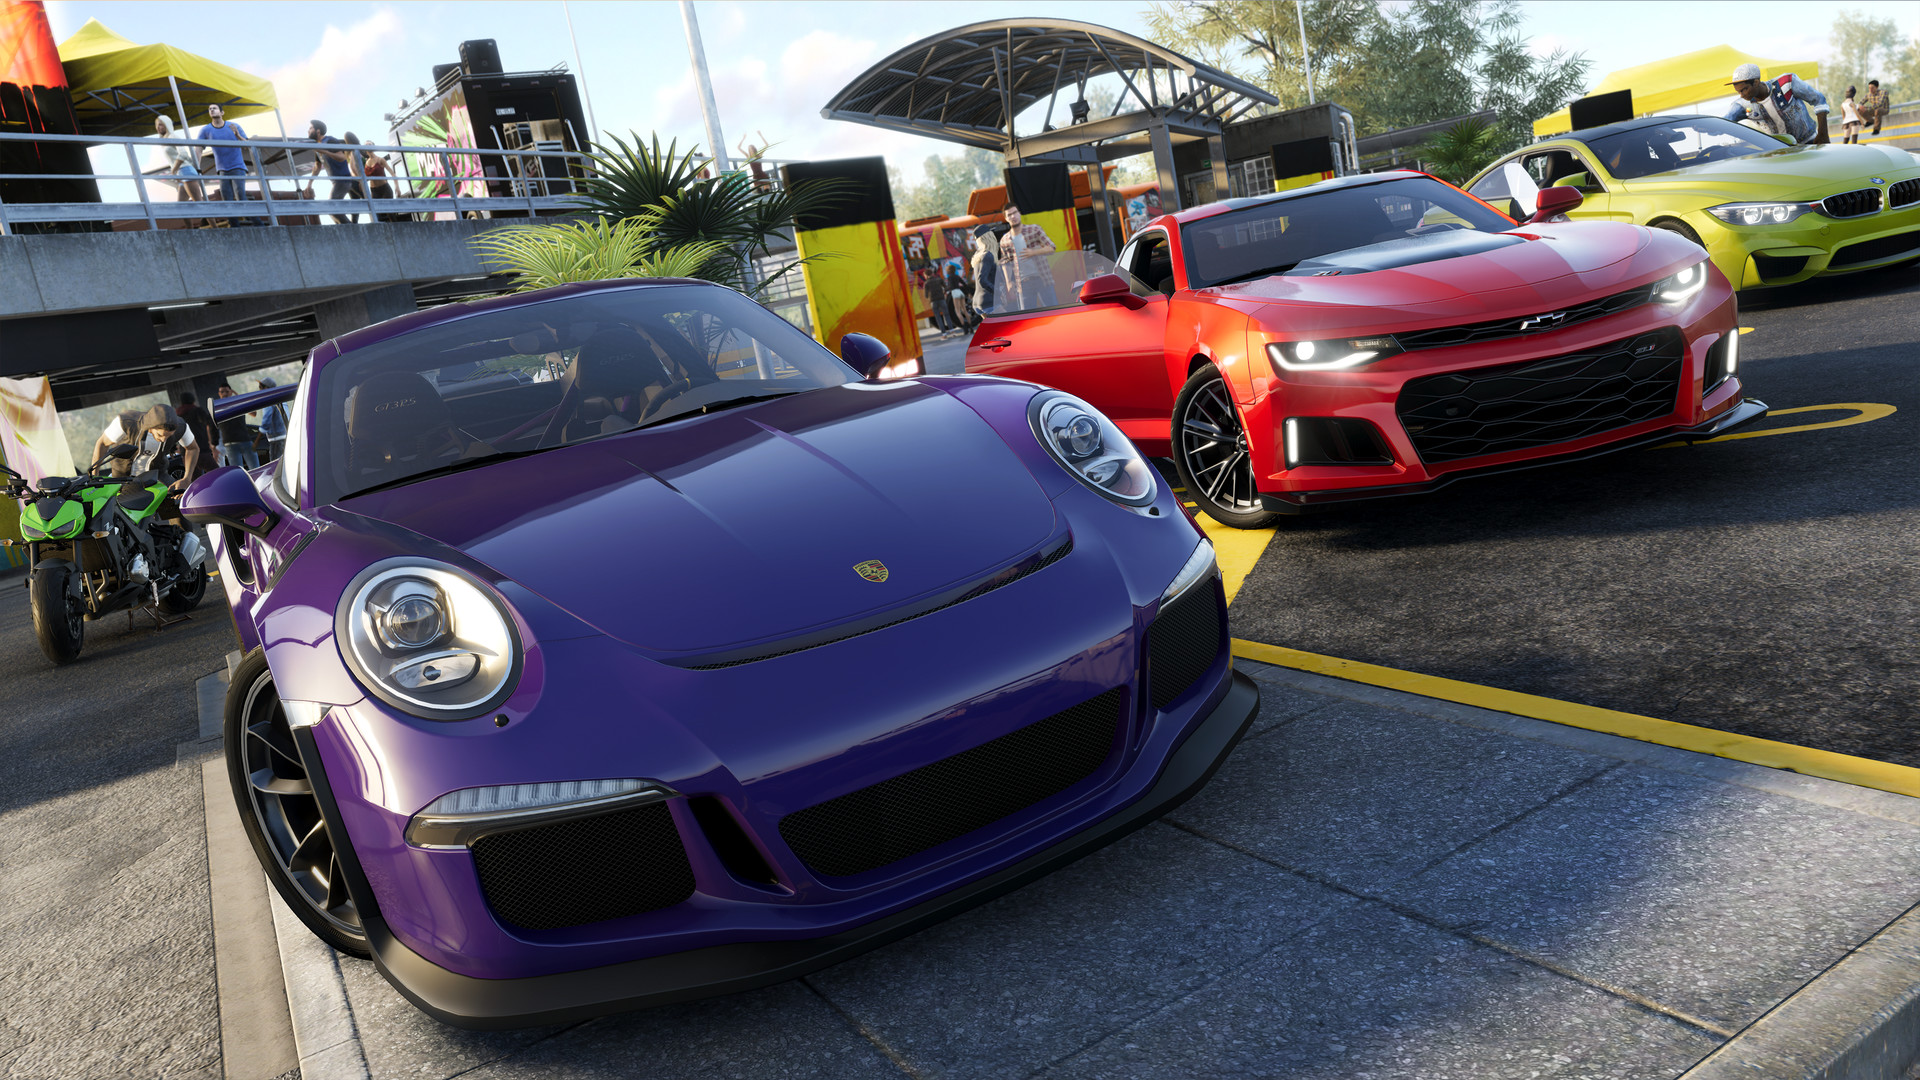 Ubiosft now taking registrations for The Crew 2 closed beta